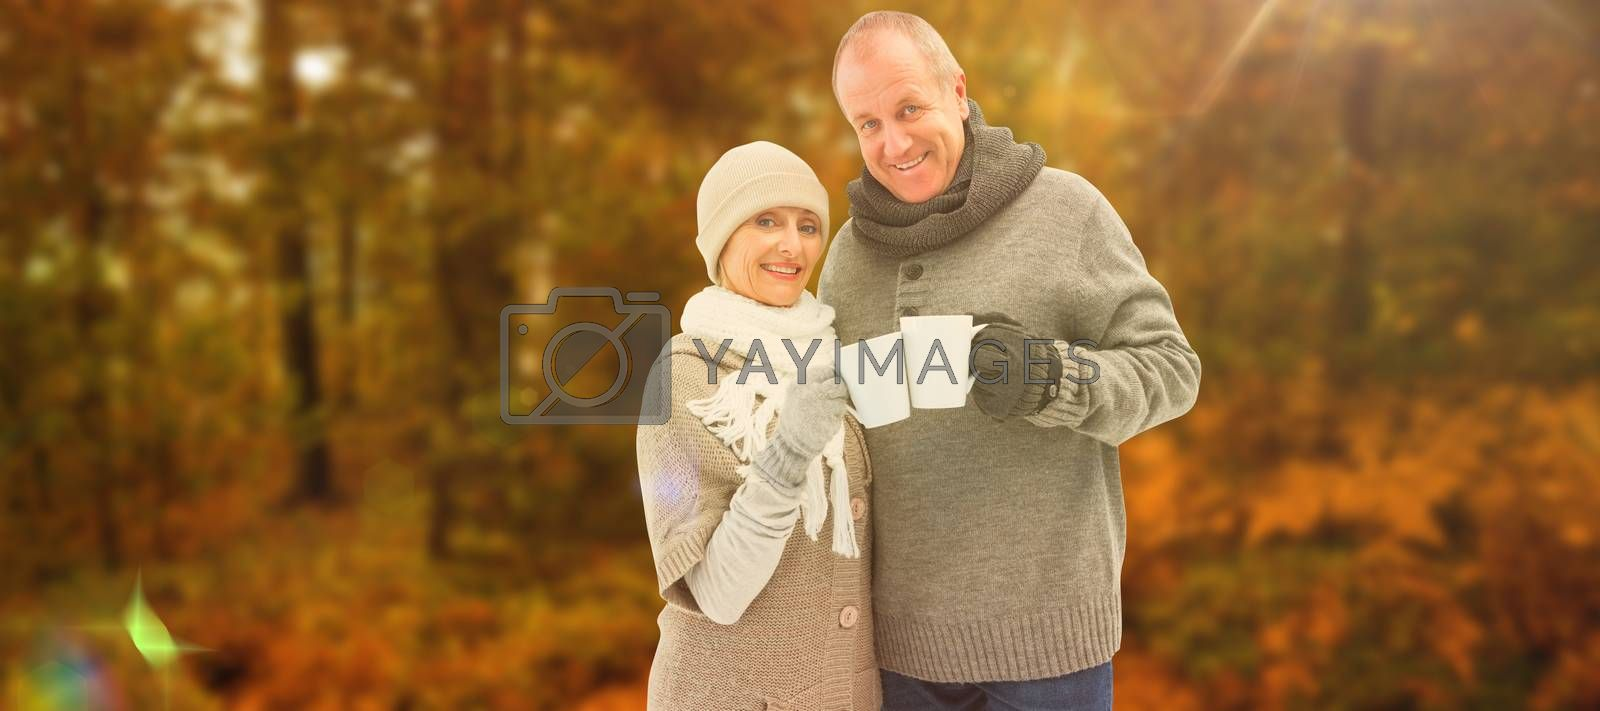 Happy mature couple in winter clothes holding mugs against autumn scene